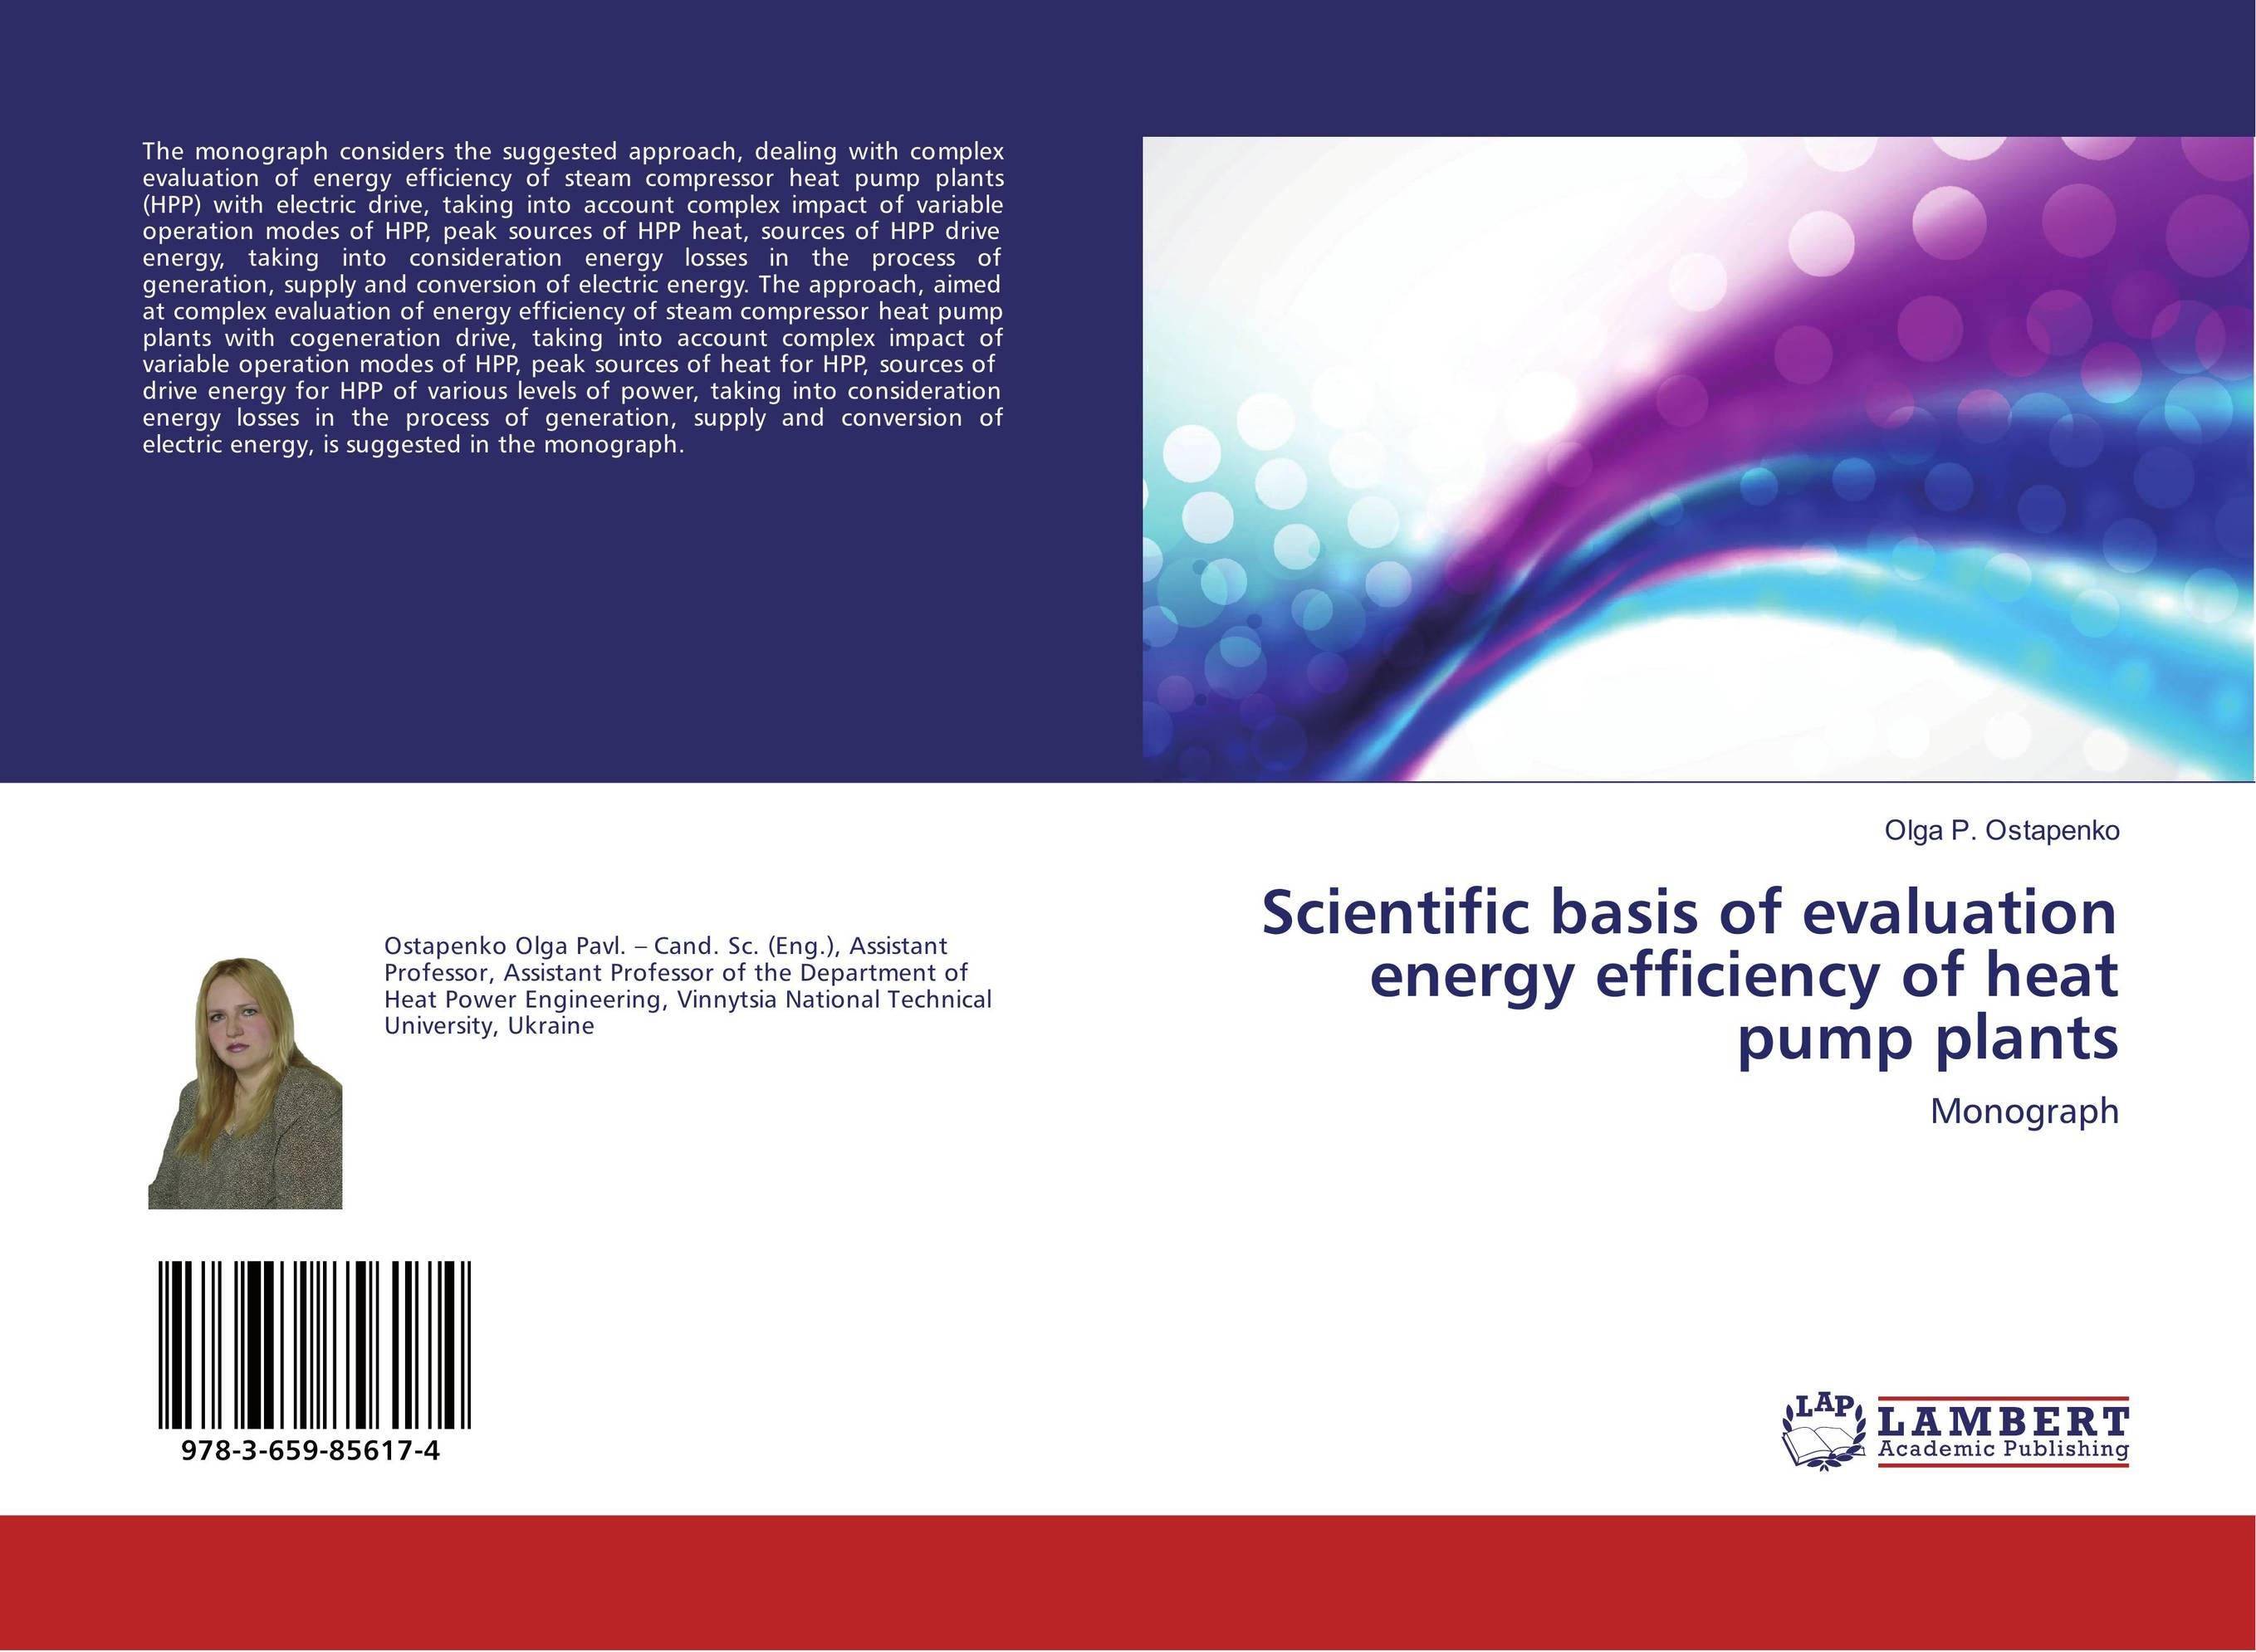 Scientific basis of evaluation energy efficiency of heat pump plants evaluation of the impact of a mega sporting event